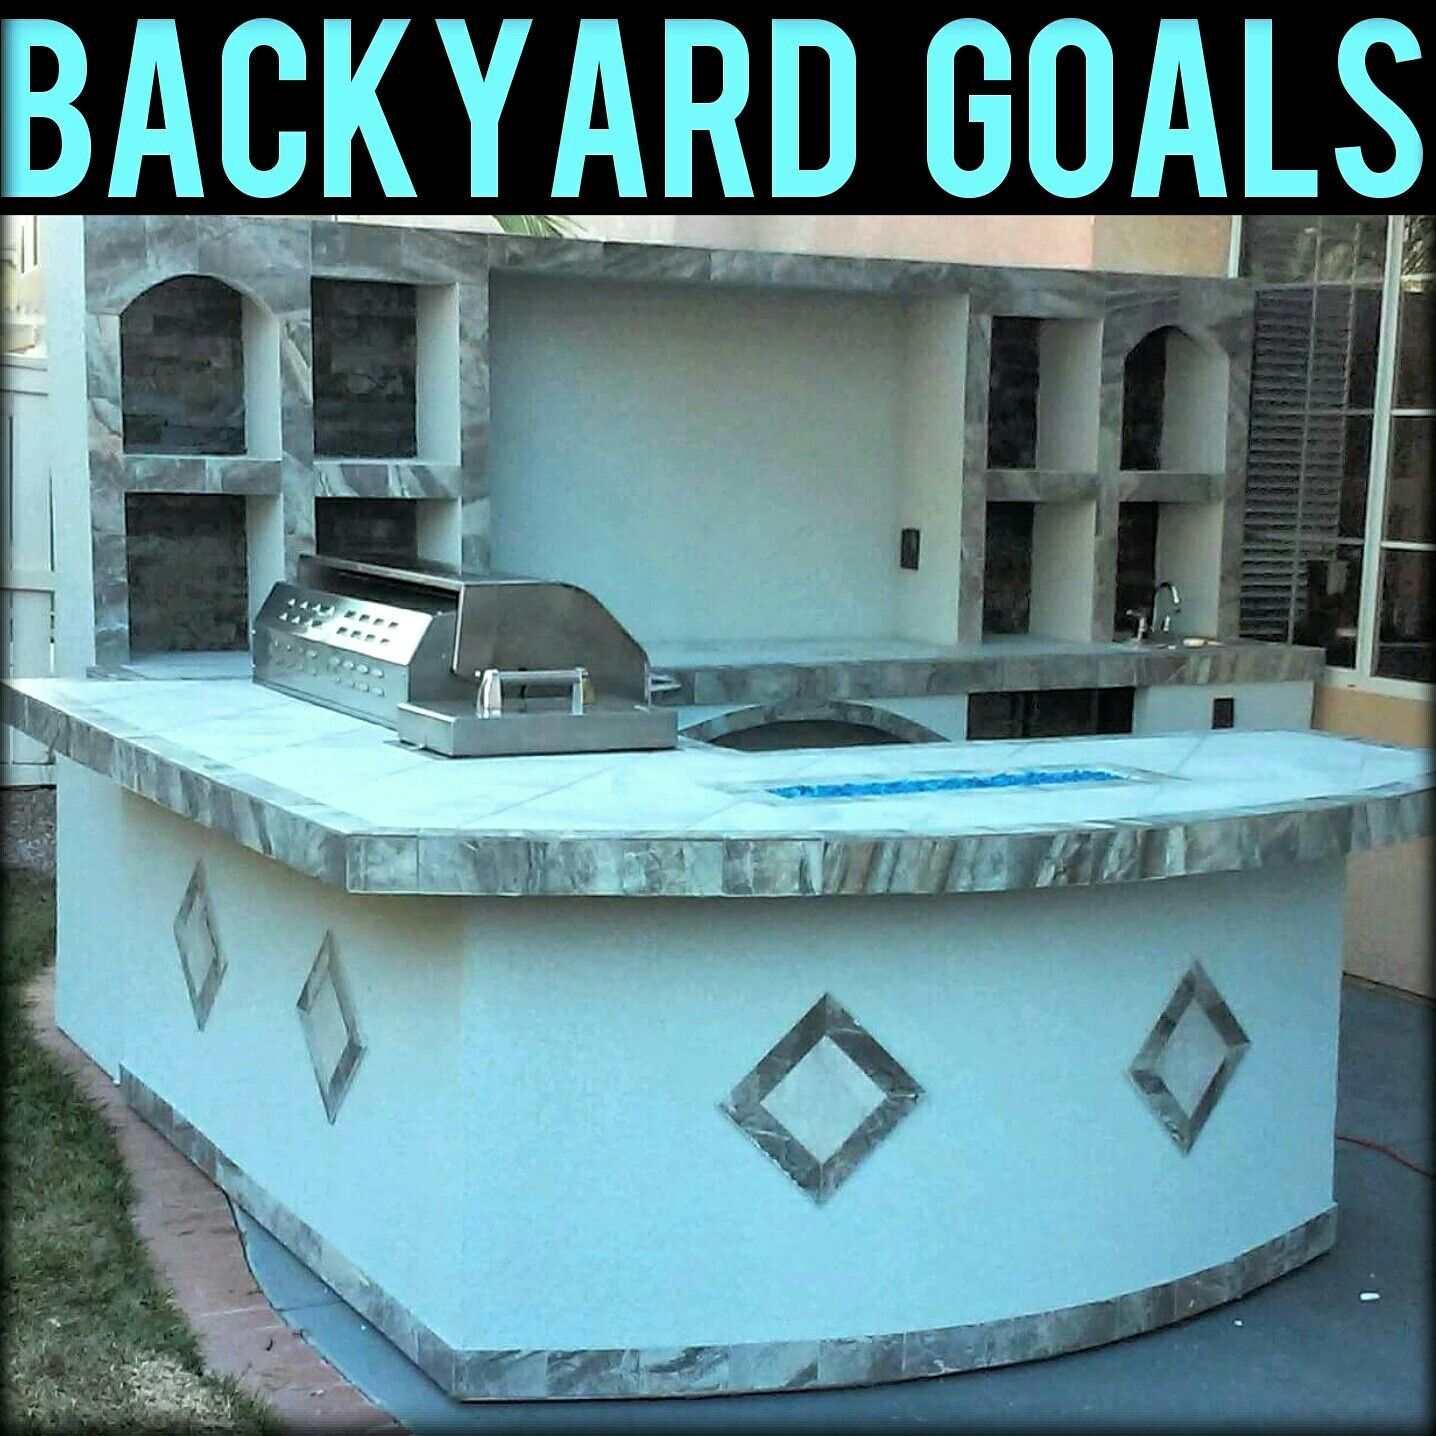 Backyard Goals - Gilligan\'s BBQ Islands - Palapas - Outdoor Kitchens ...